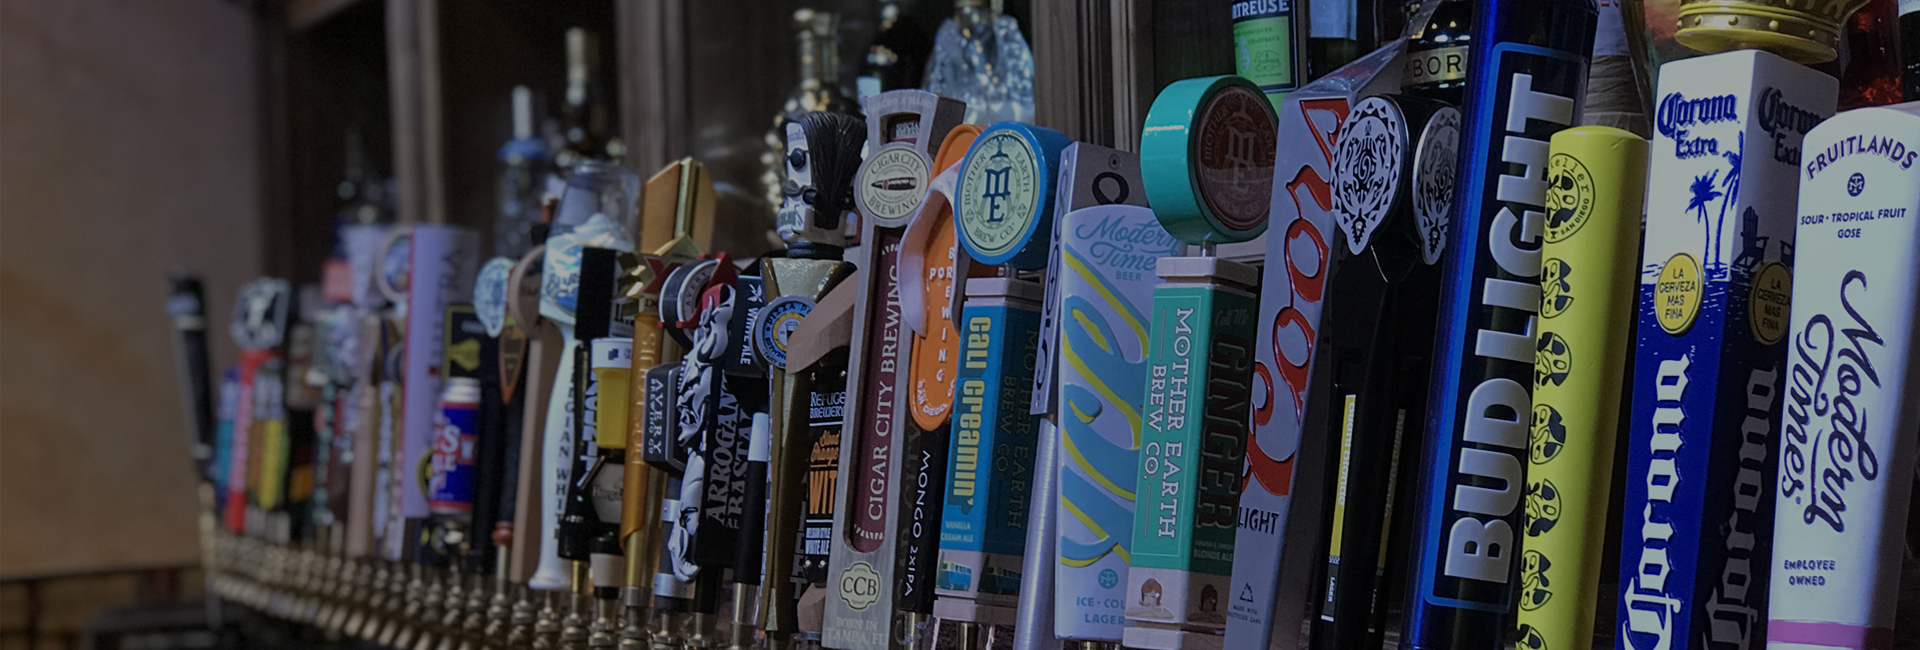 The Bone Yard Bar And Grill-BeerList